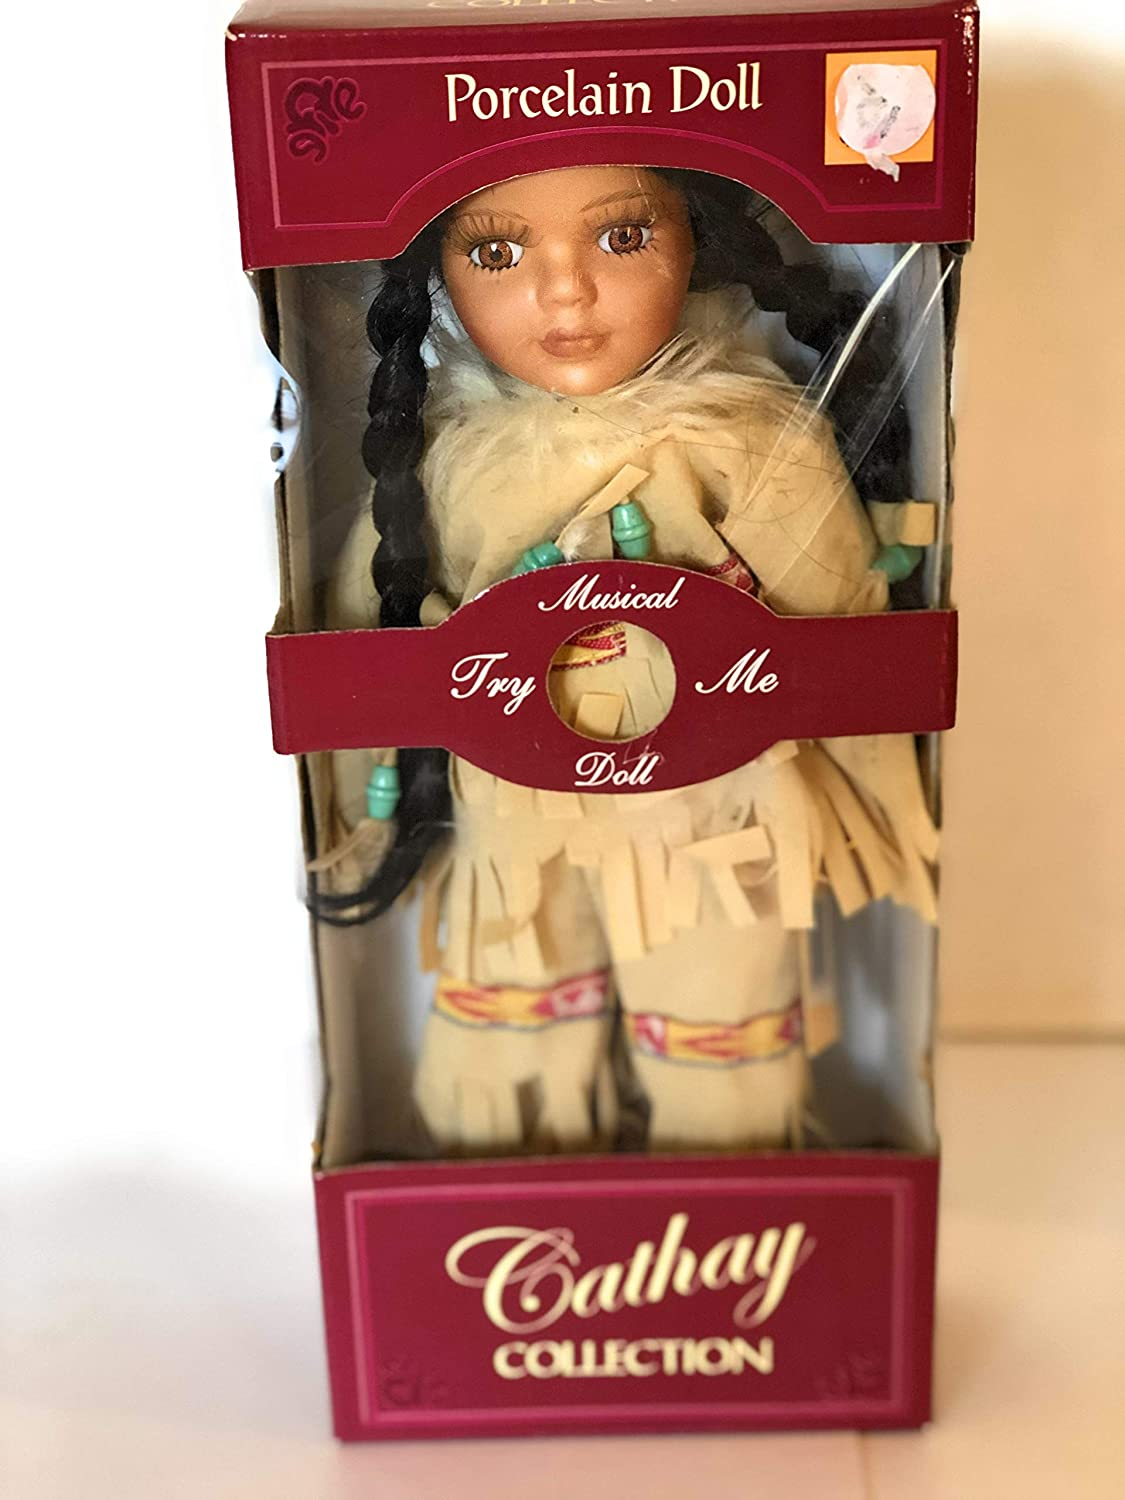 Cathay Collection Dancing Breeze Porcelain Doll